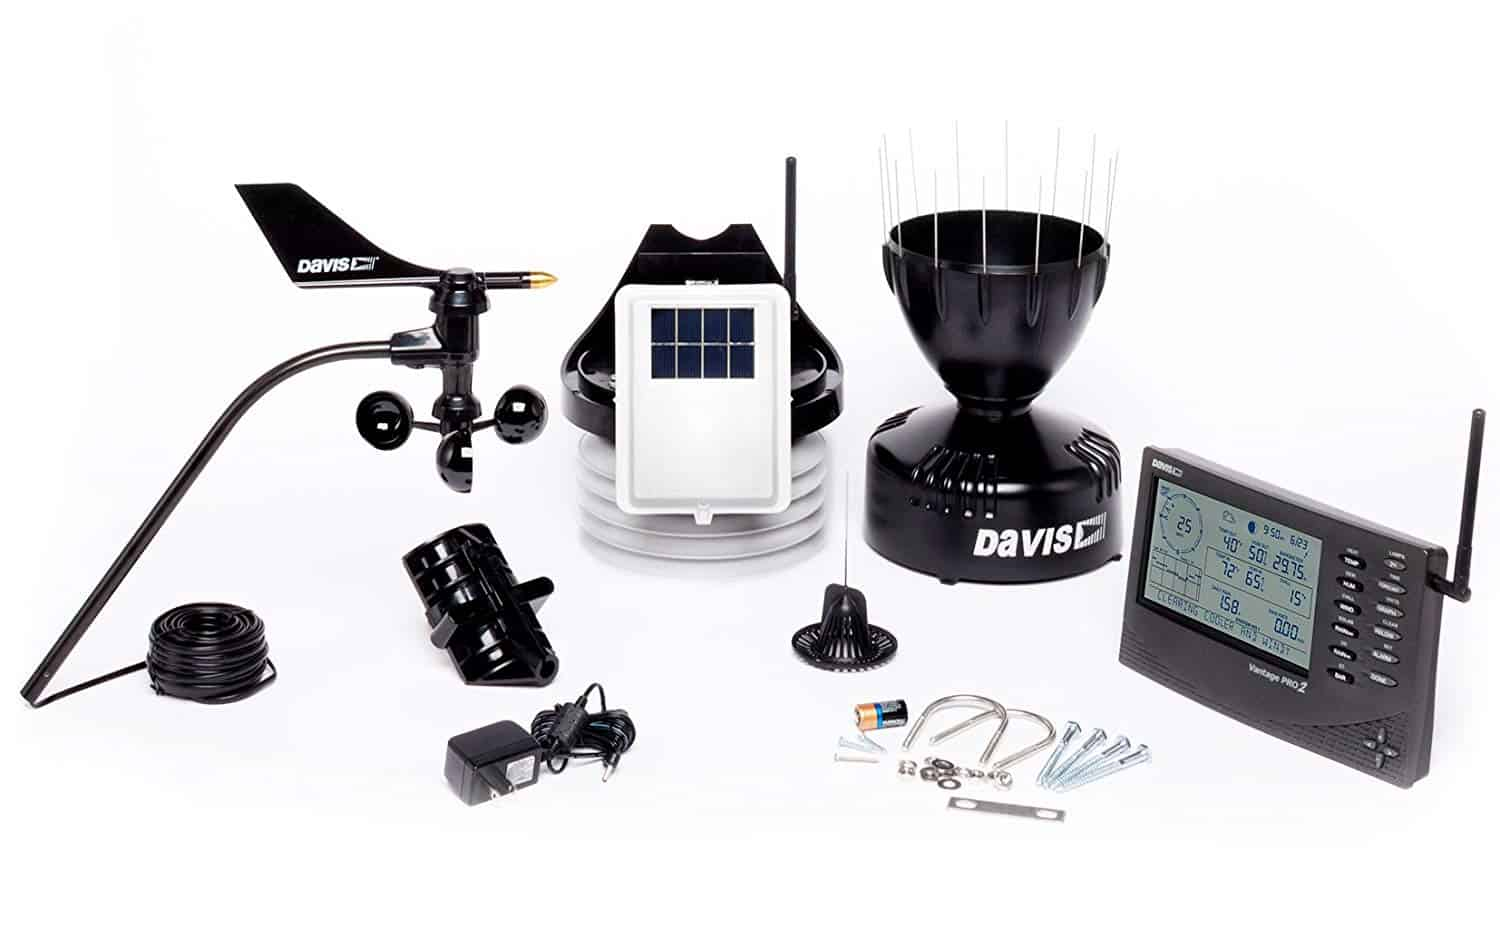 Best budget weather stations